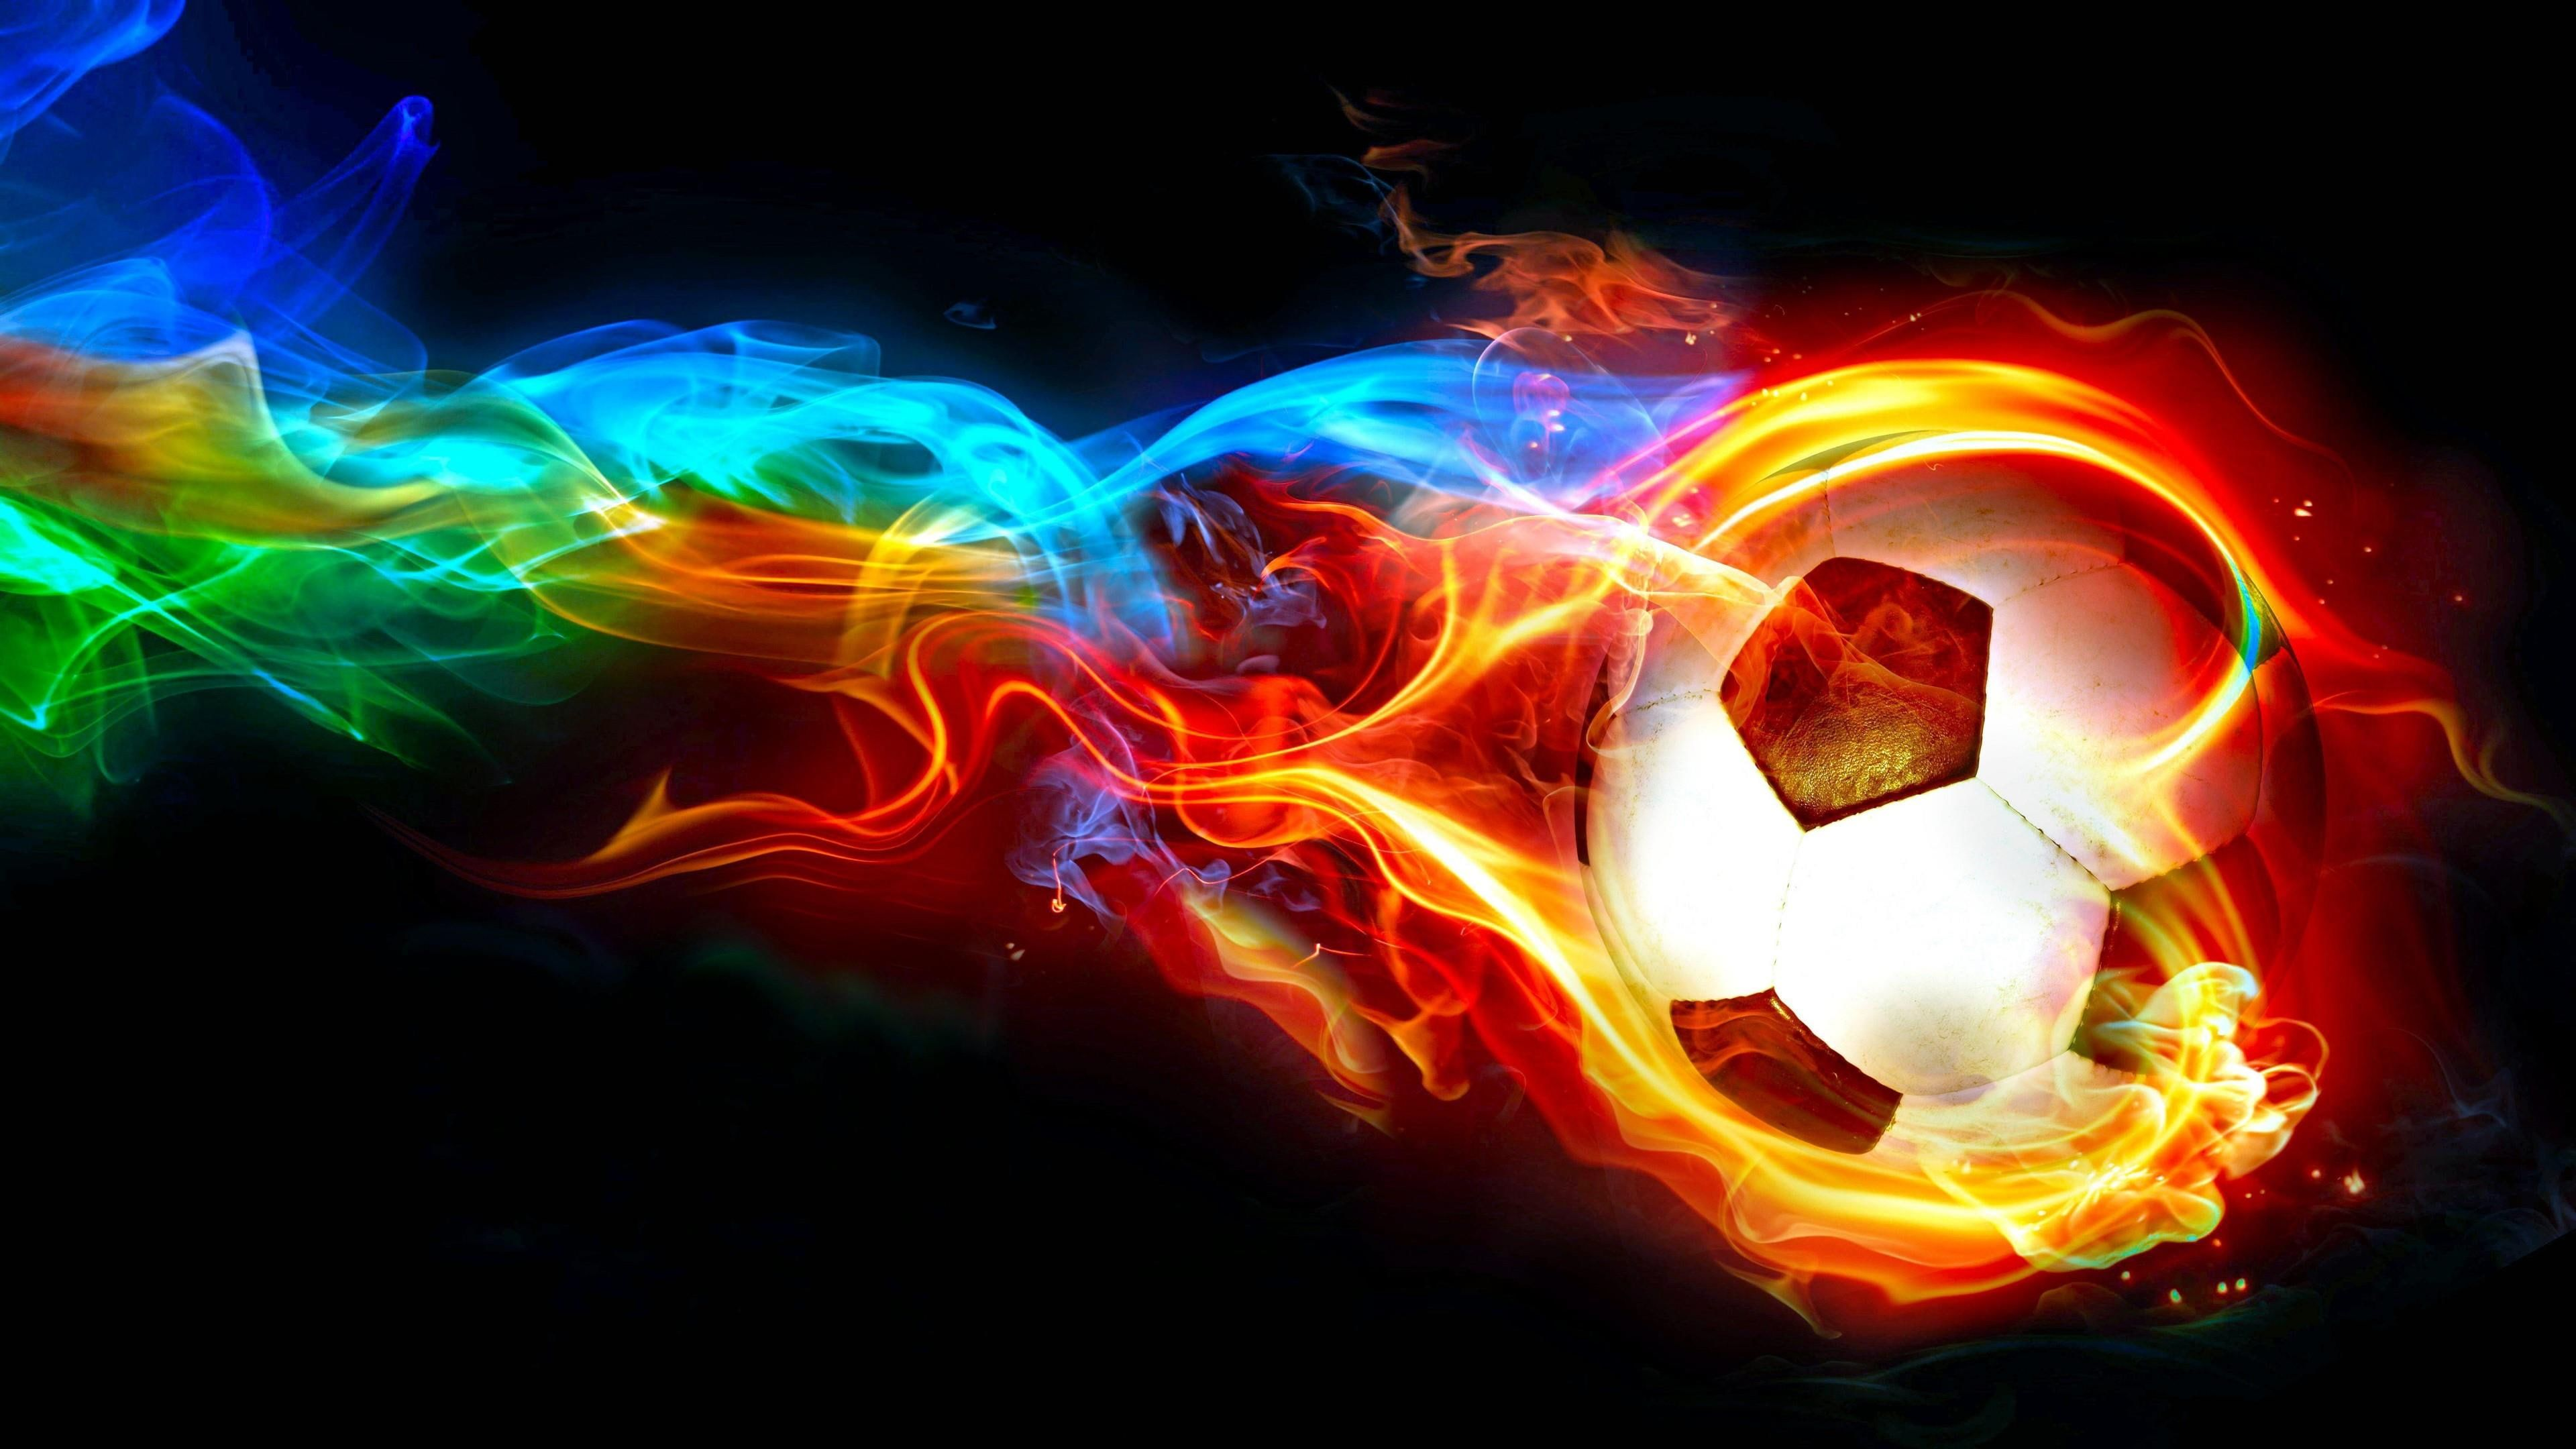 Cool Fire Soccer Images